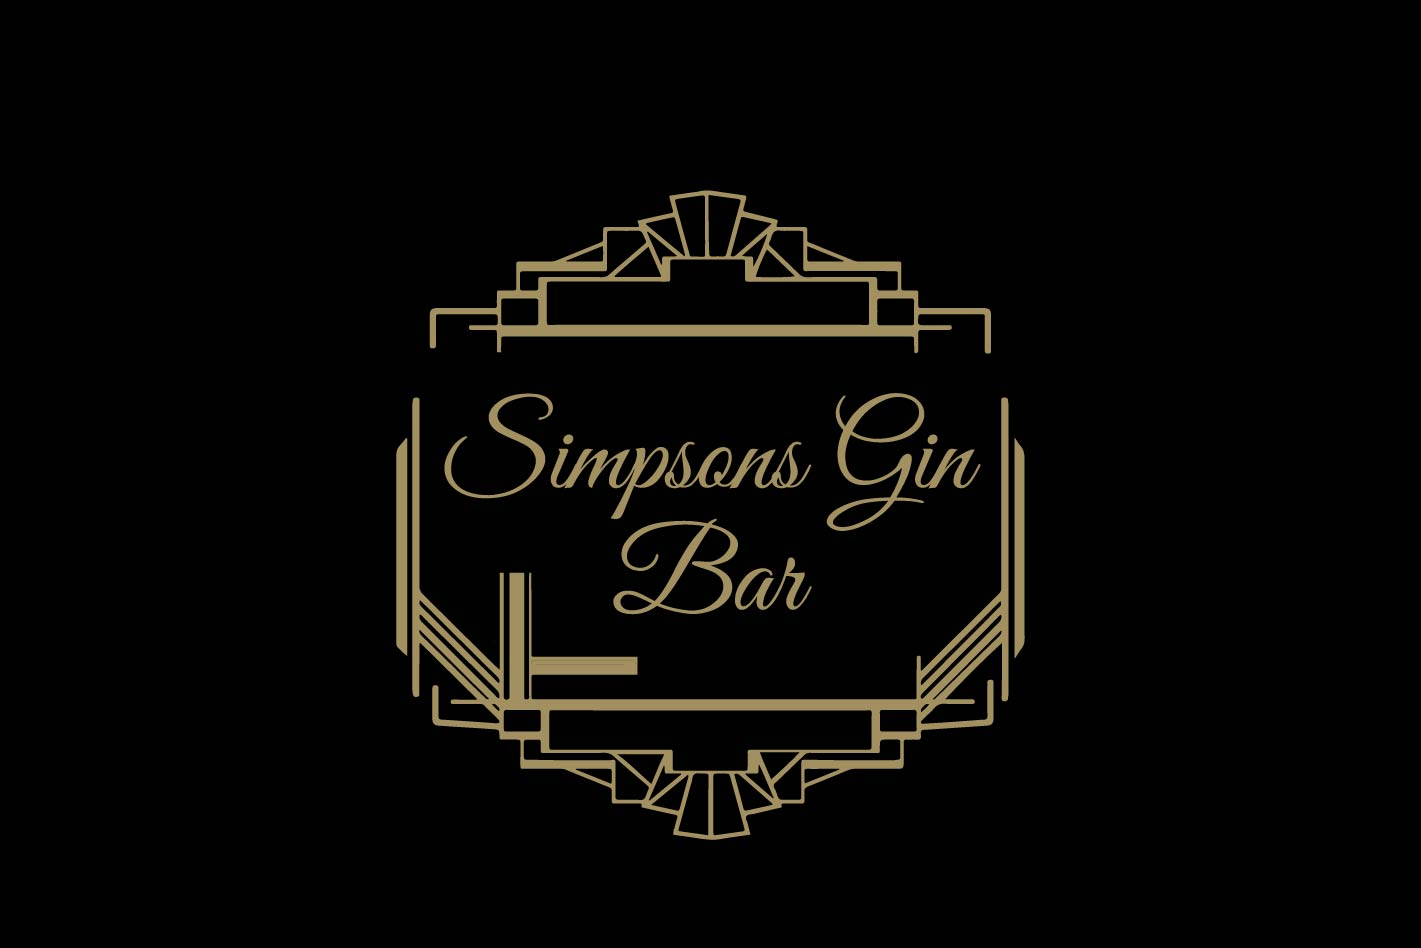 Simpsons Bar